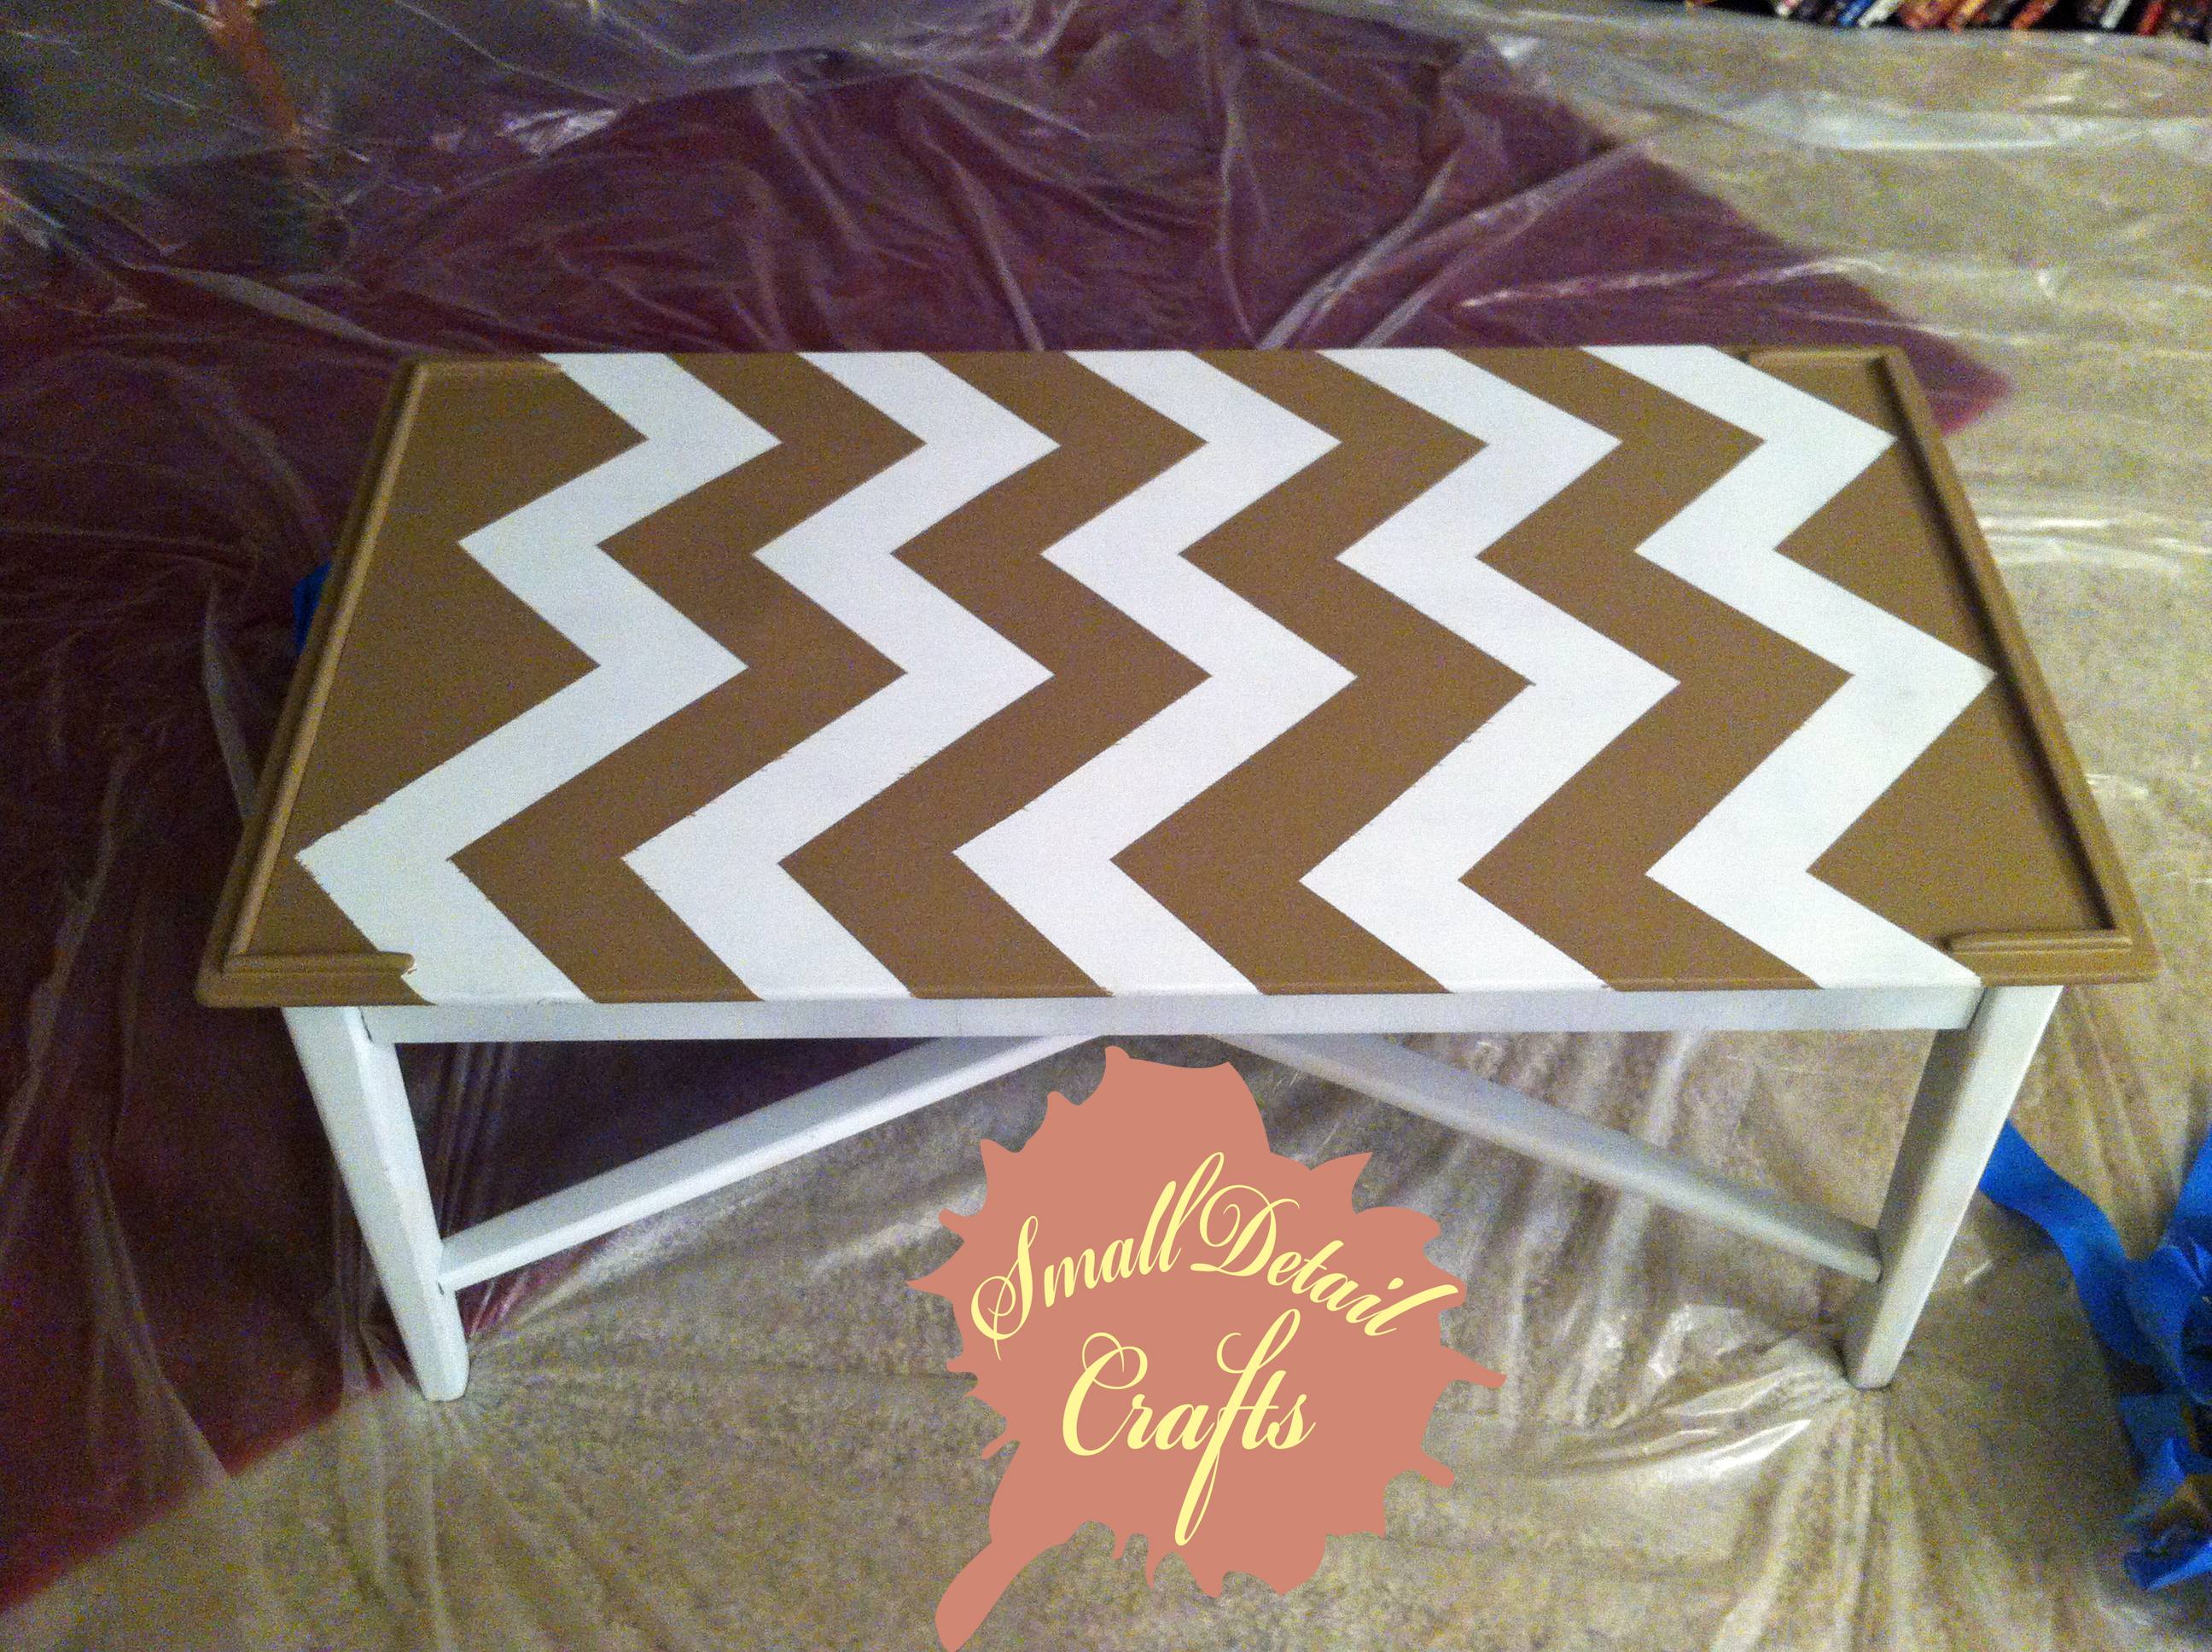 good paint colors for living room sofa set diy spray chevron table | small detail crafts